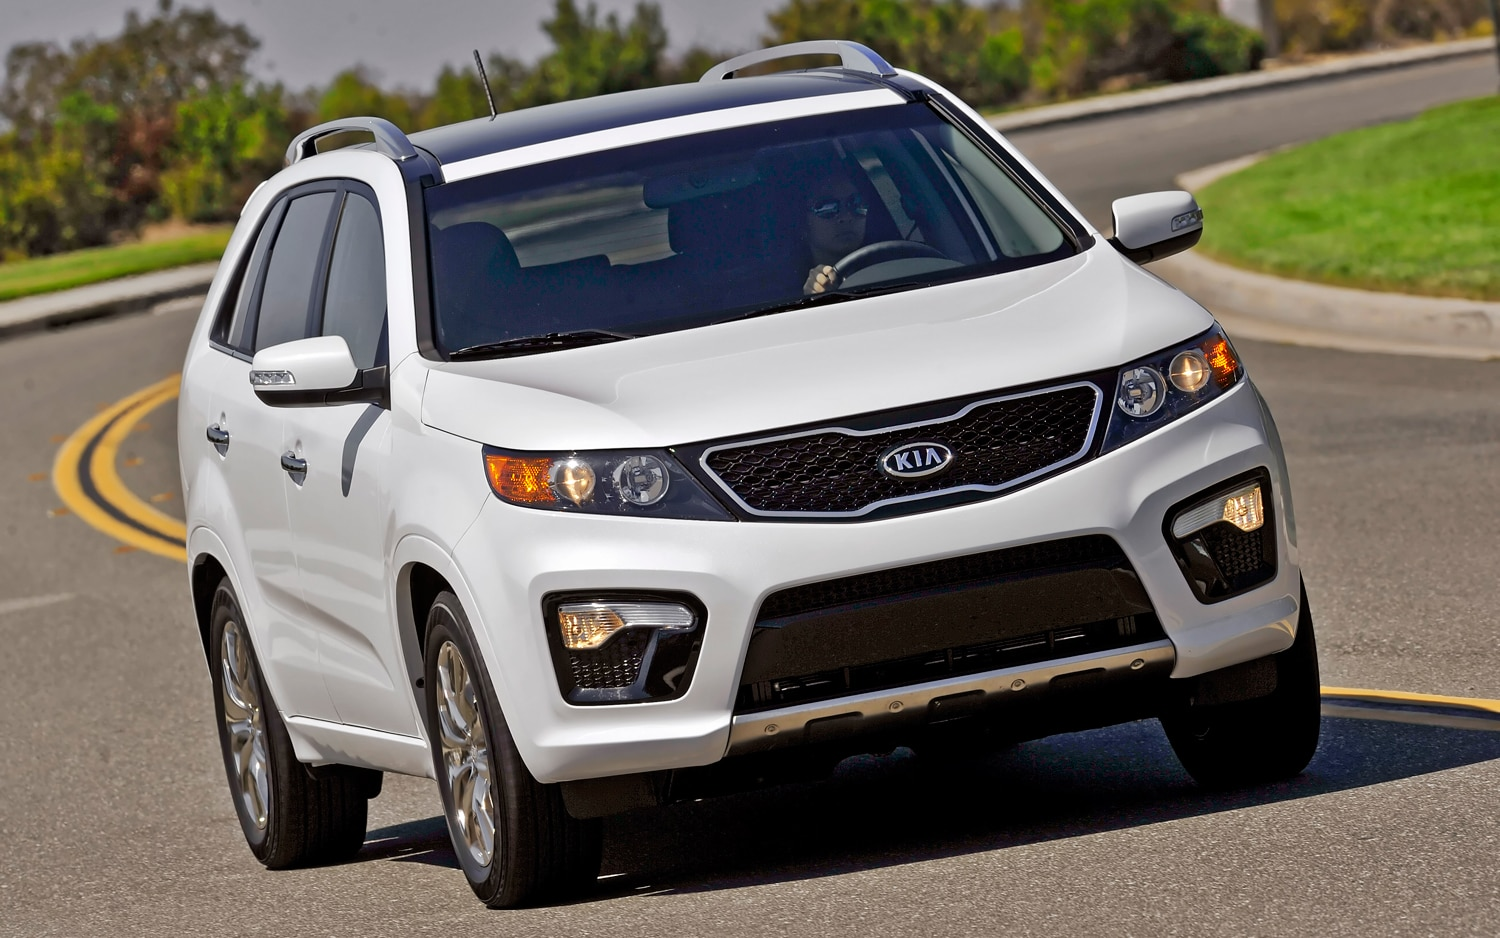 2012 Kia Sorento Front Right View 5